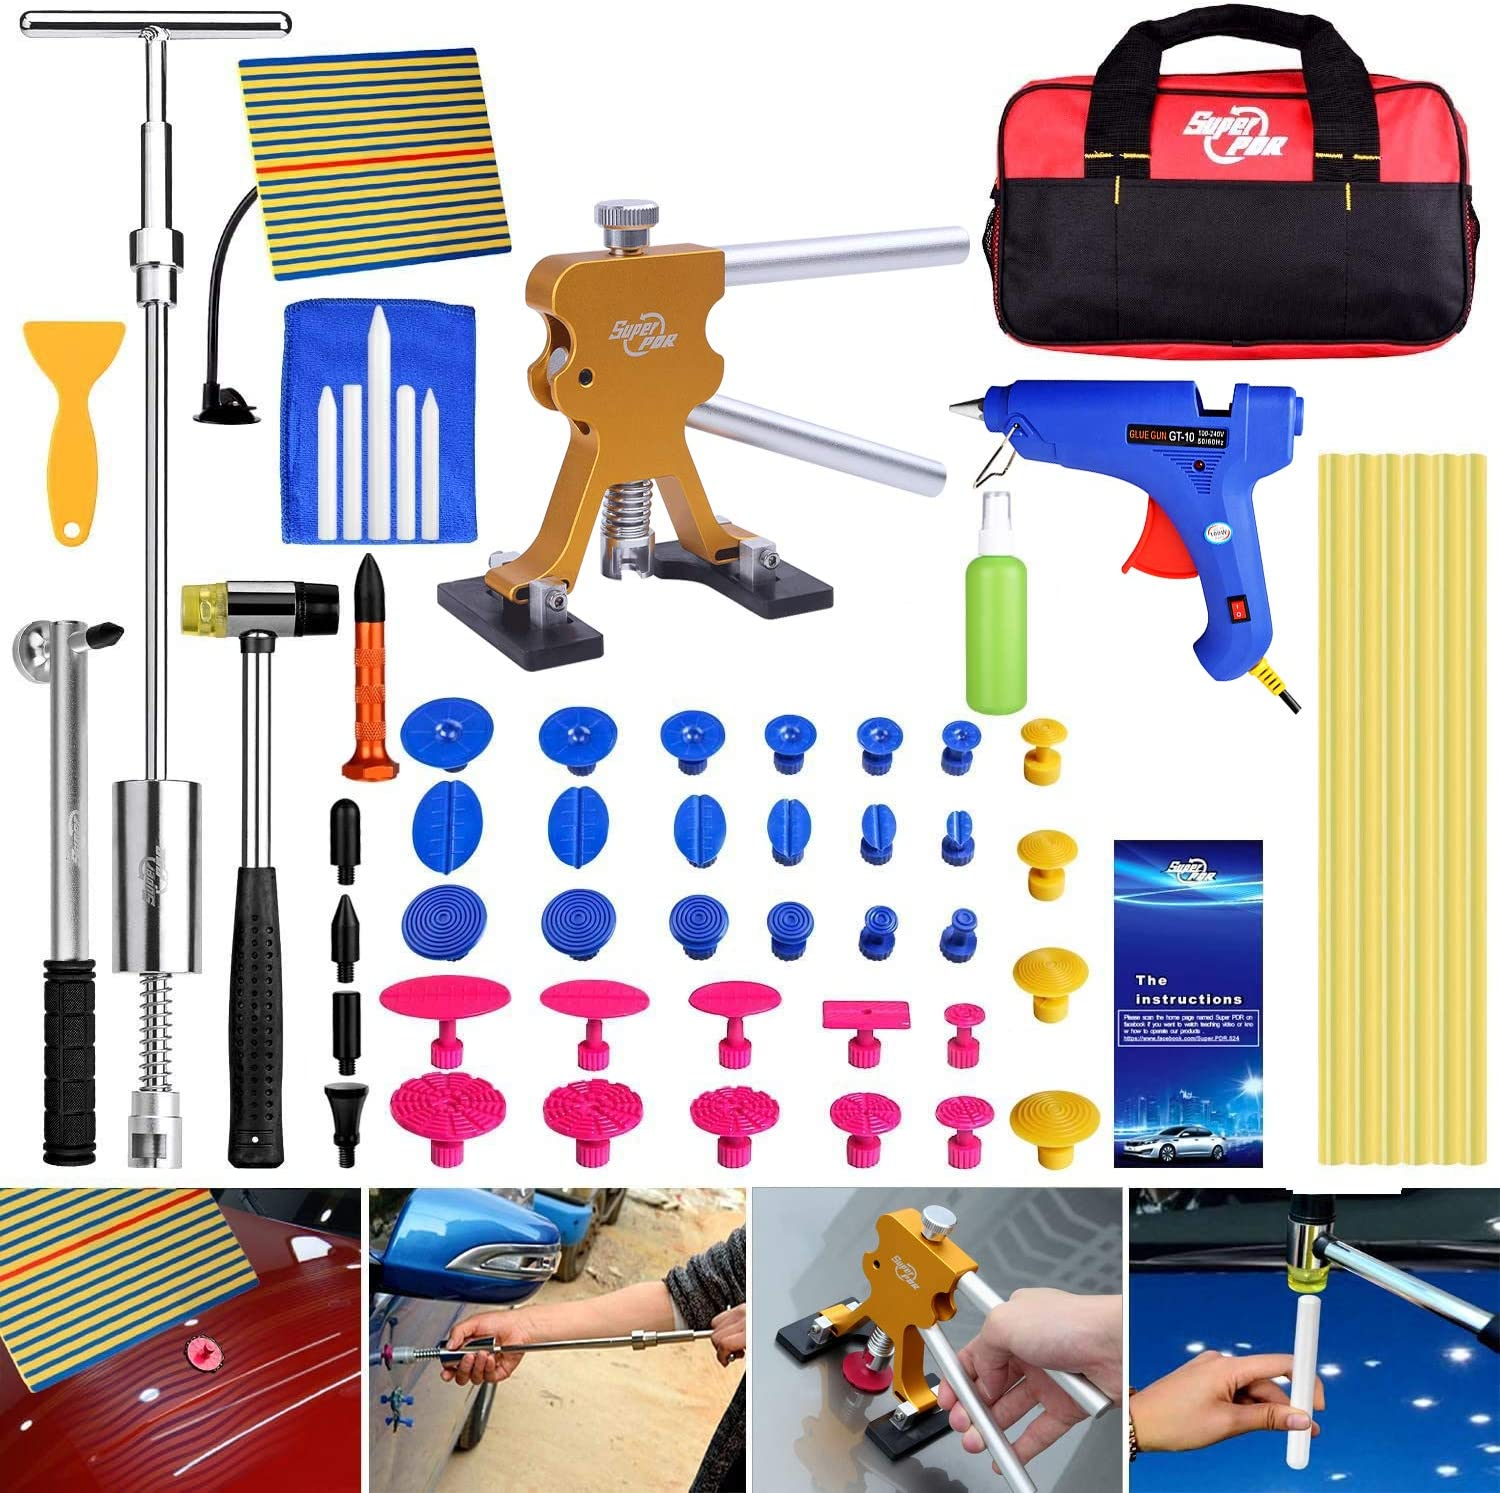 Amazon Com Super Pdr 51pcs Paintless Dent Repair Tools Kit Golden Dent Lifter Slide Hammer 2 In 1 T Bar Tool With Hot Melt Glue Gun Glue Stick For Auto Body Dent Repair Or